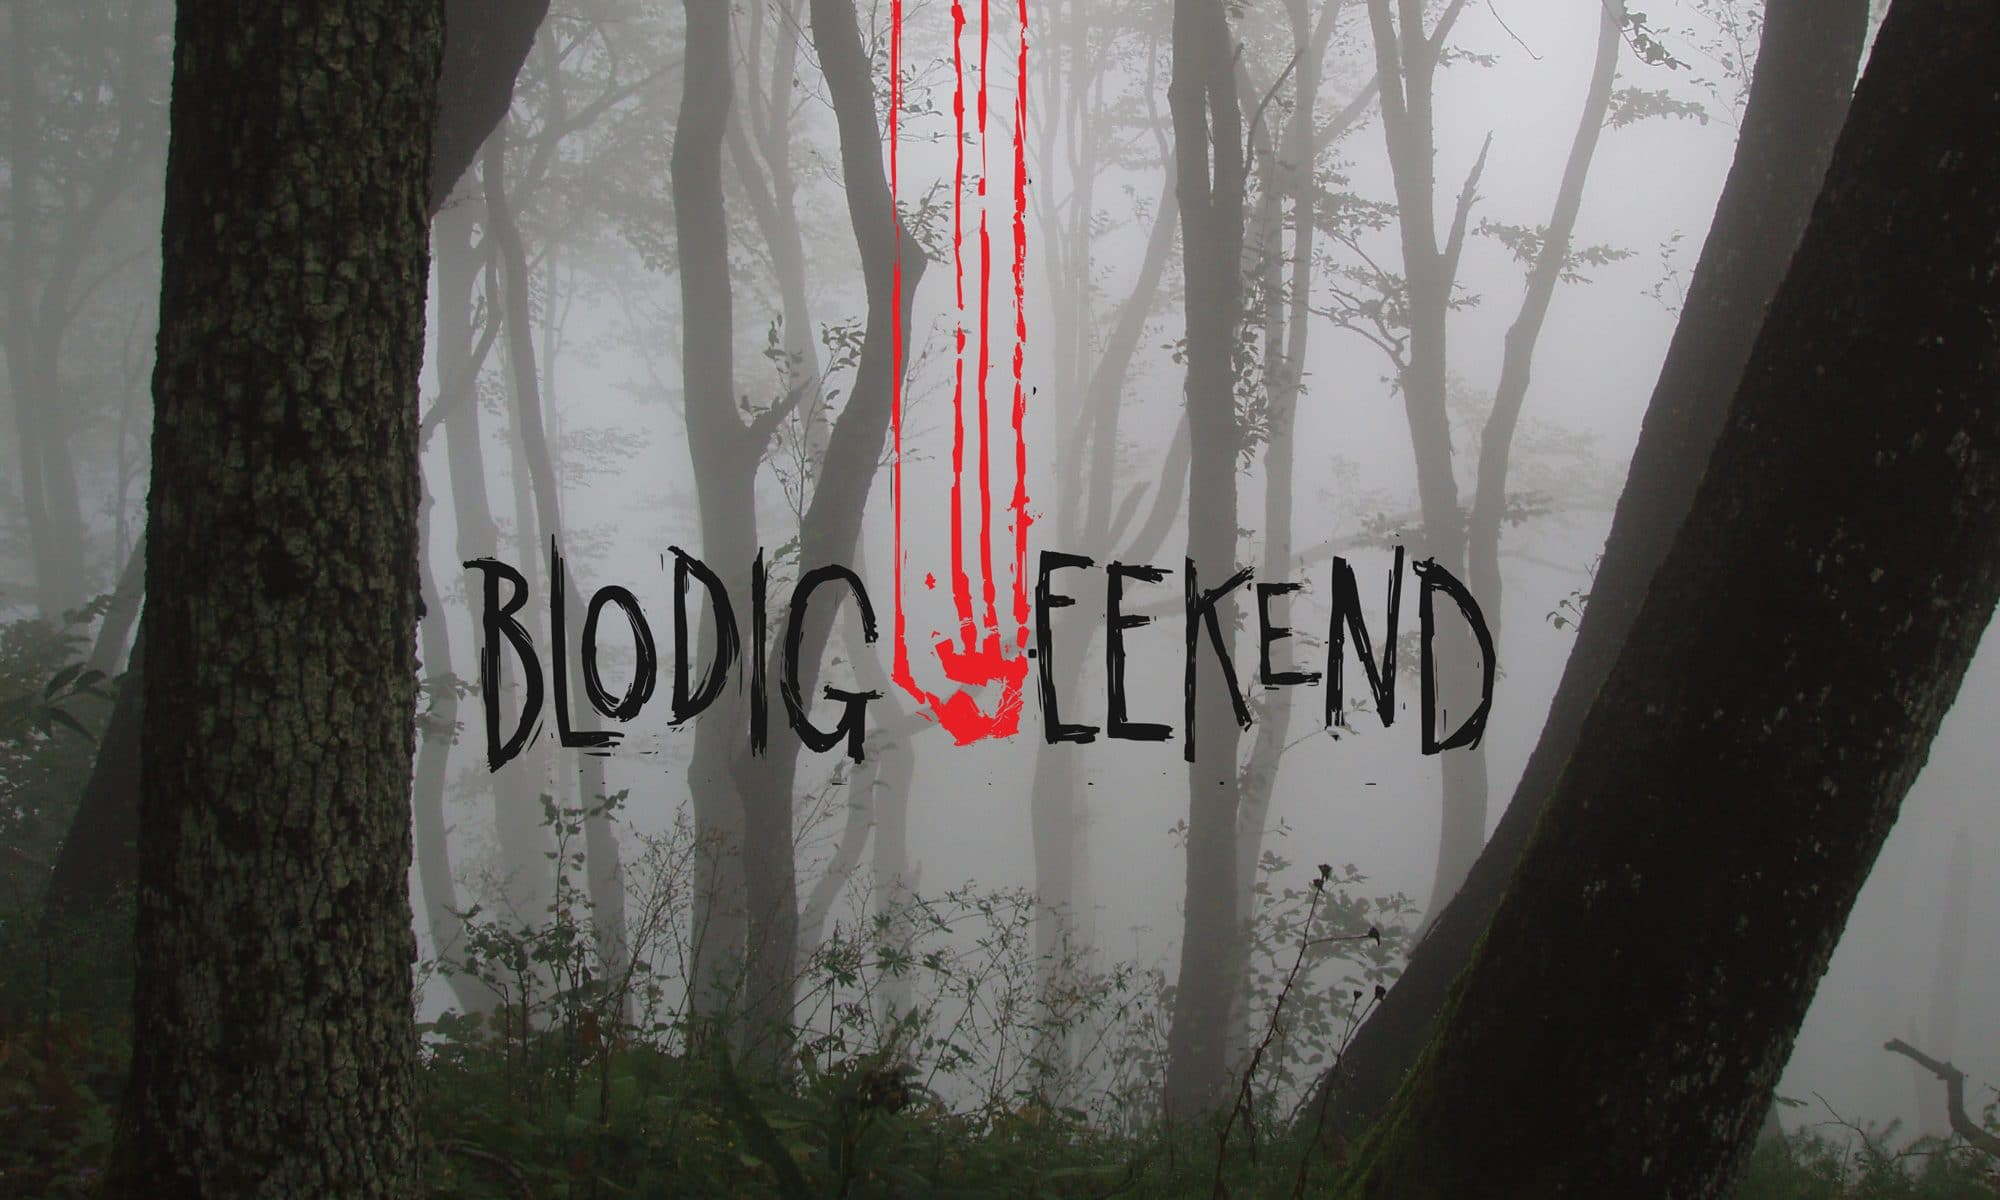 Blodig weekend 2018 program